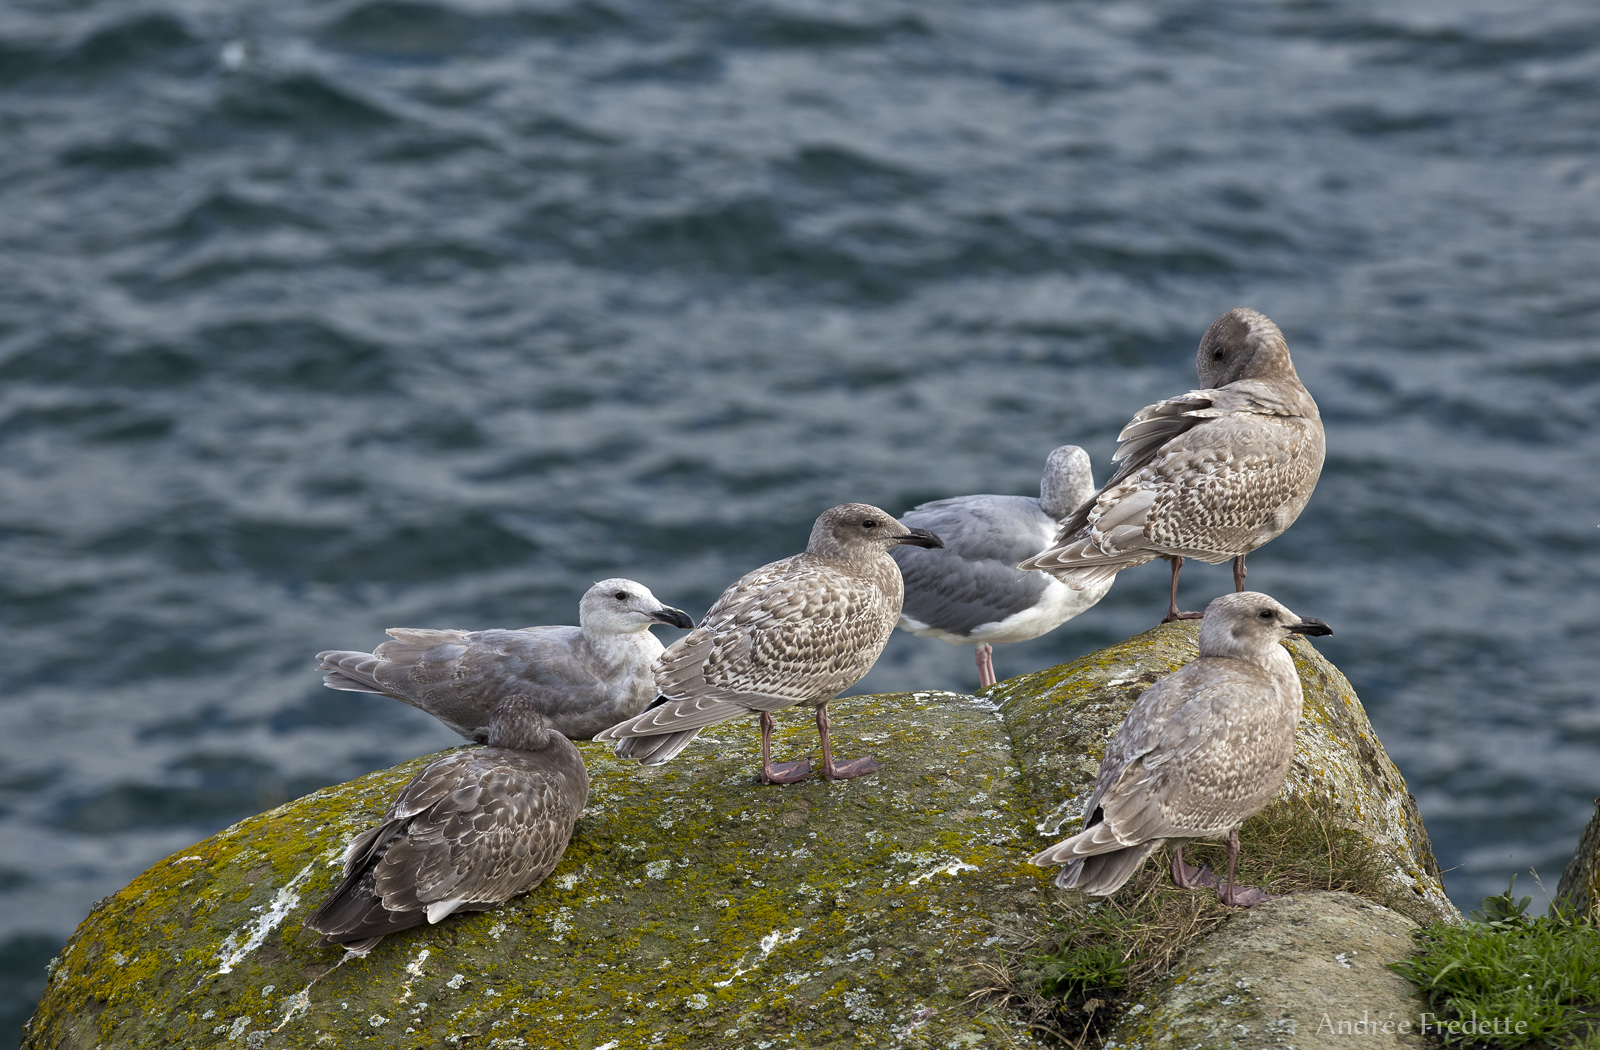 Immature herring gulls at East Point, Saturna Island, BC. Photo by Andrée Fredette